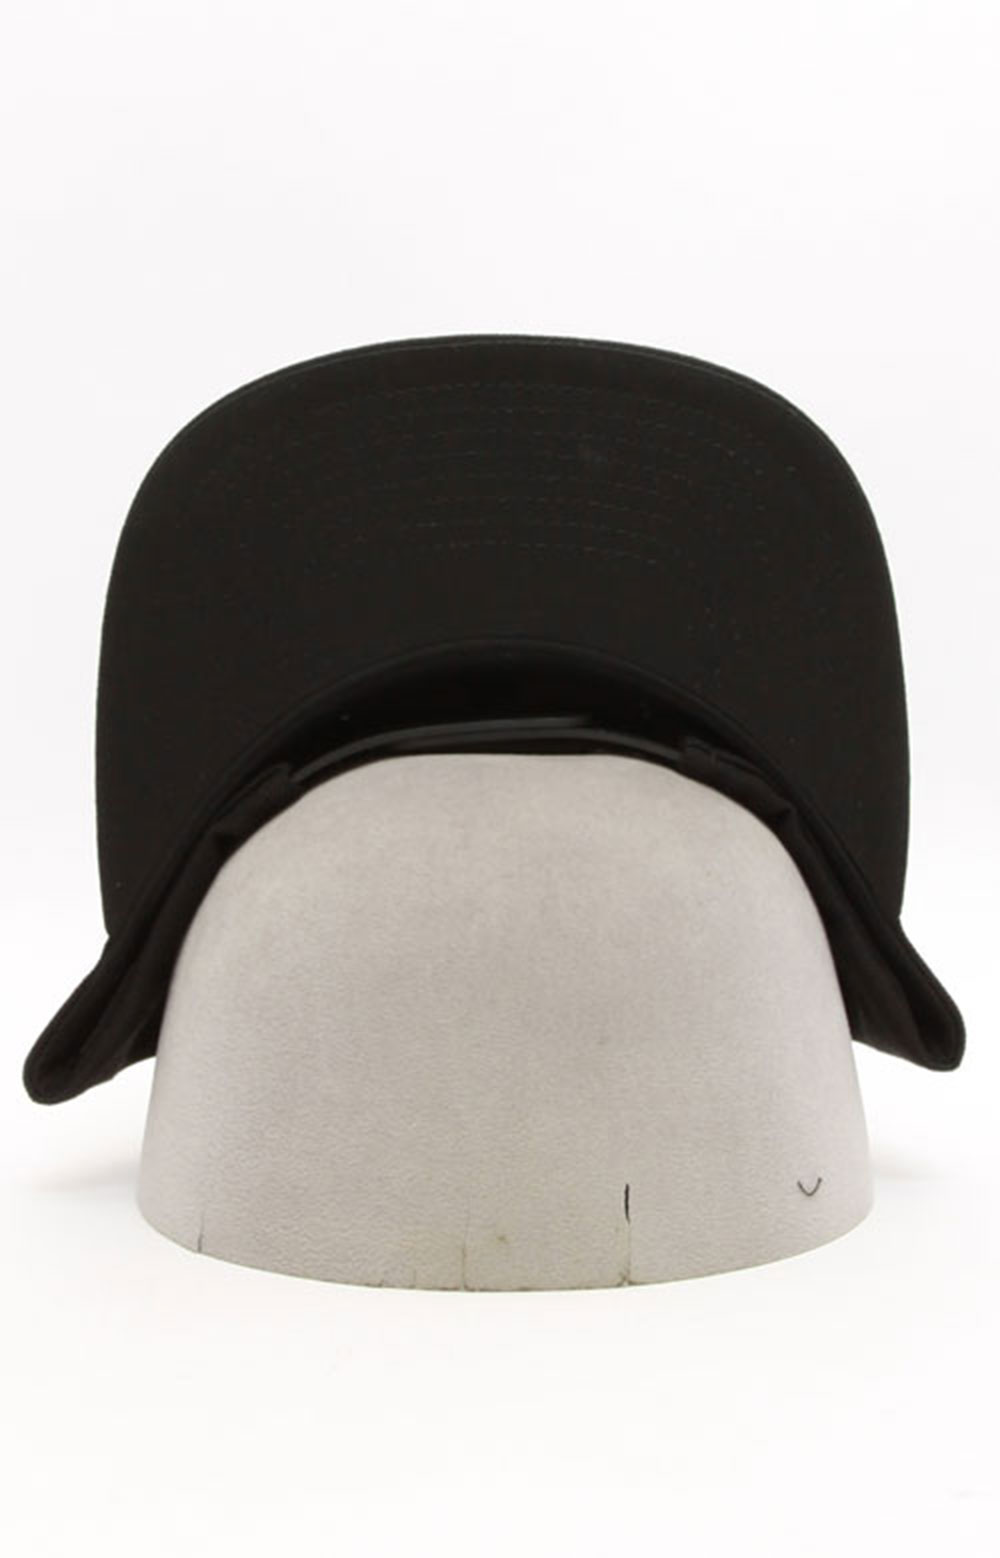 Oath III Snap-Back Hat - Black 3